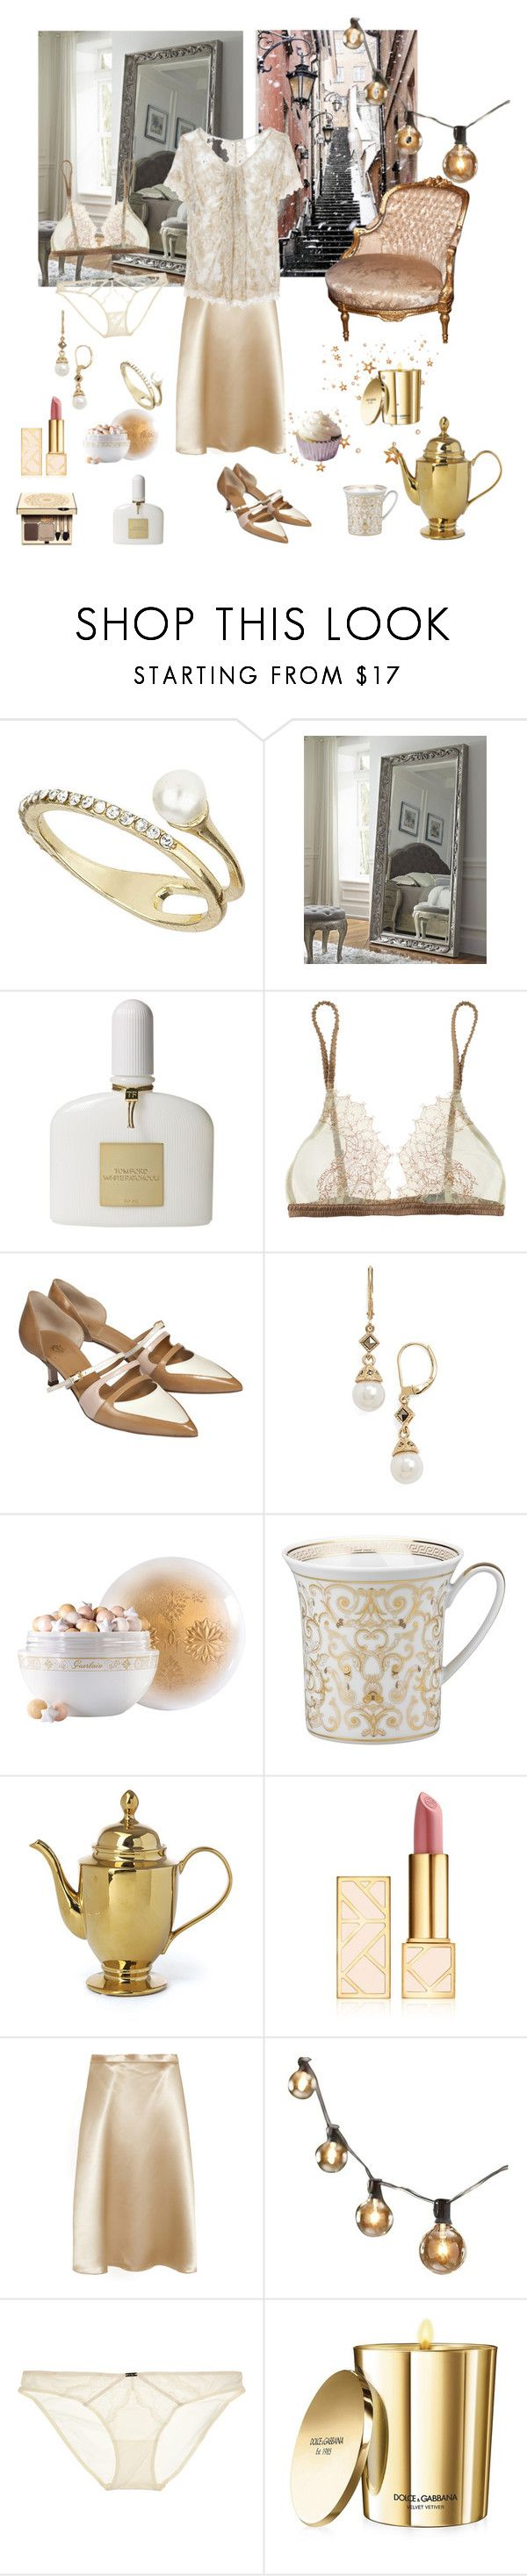 """""""Waiting for Santa"""" by nathalie-puex ❤ liked on Polyvore featuring Topshop, Tom Ford, La Fée Verte, De Siena, Clarins, Judith Jack, Guerlain, Versace, Tory Burch and Christopher Kane"""